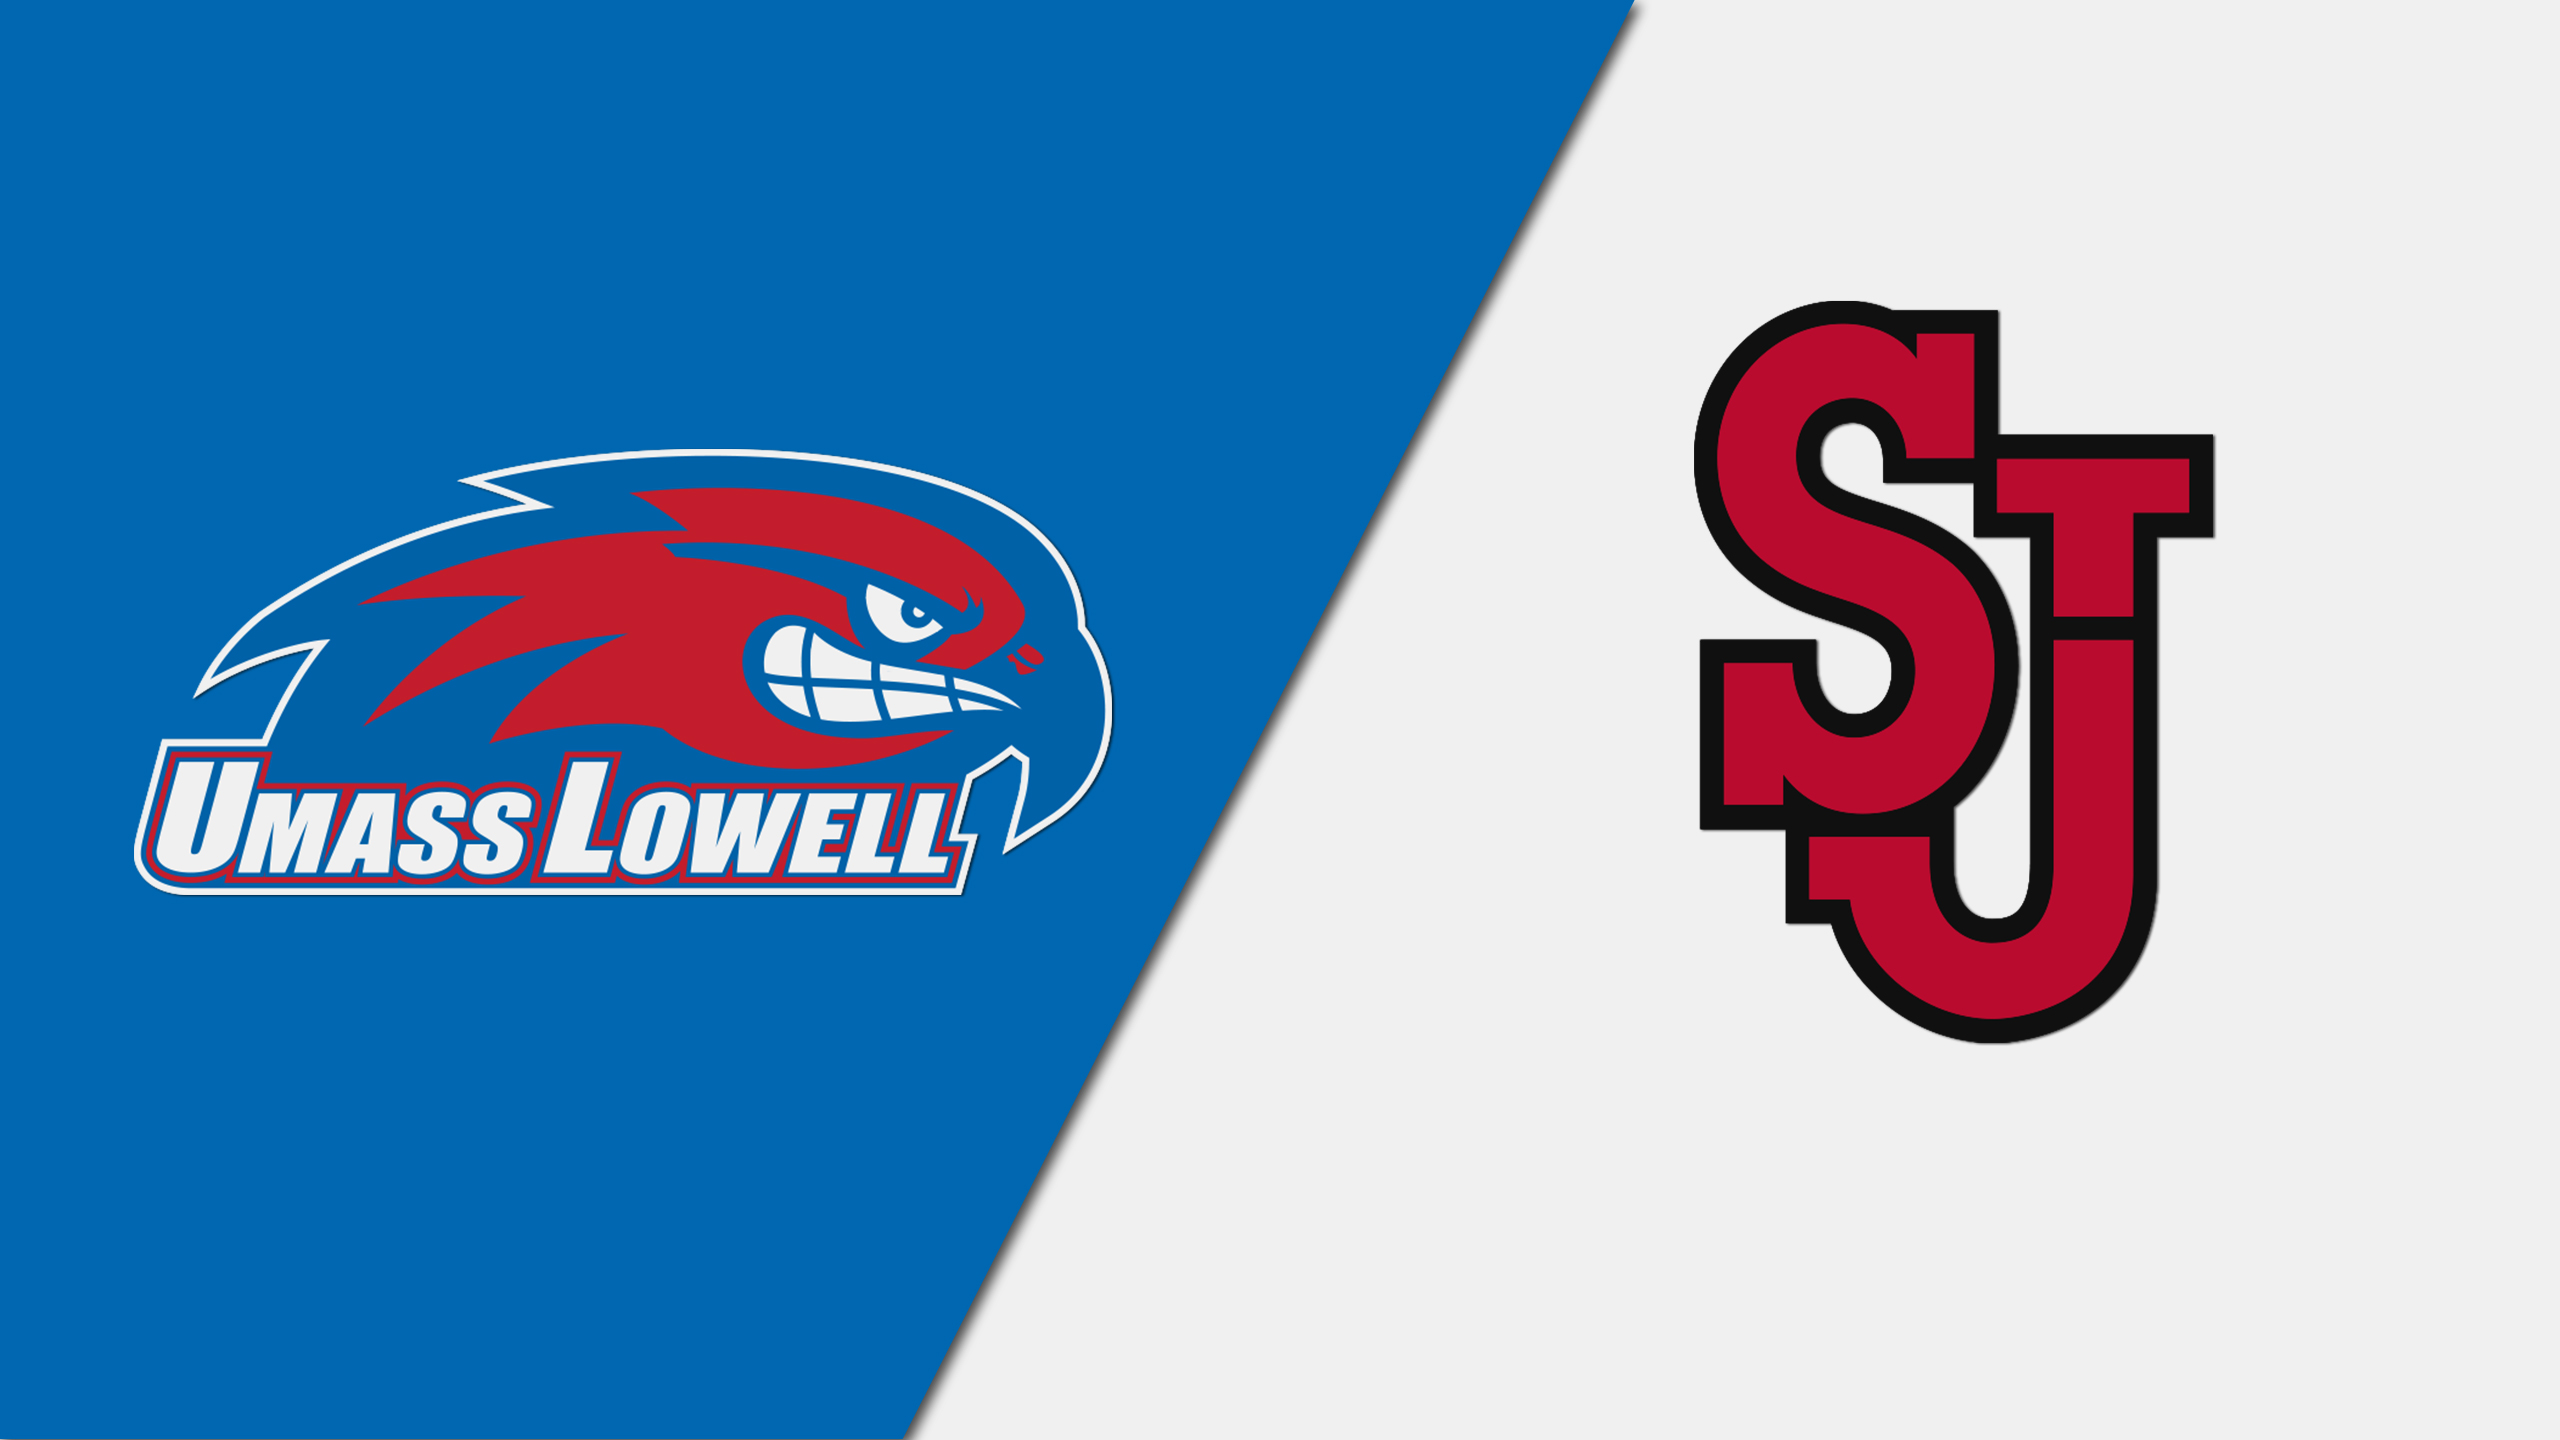 UMass Lowell vs. St. John's (M Lacrosse)